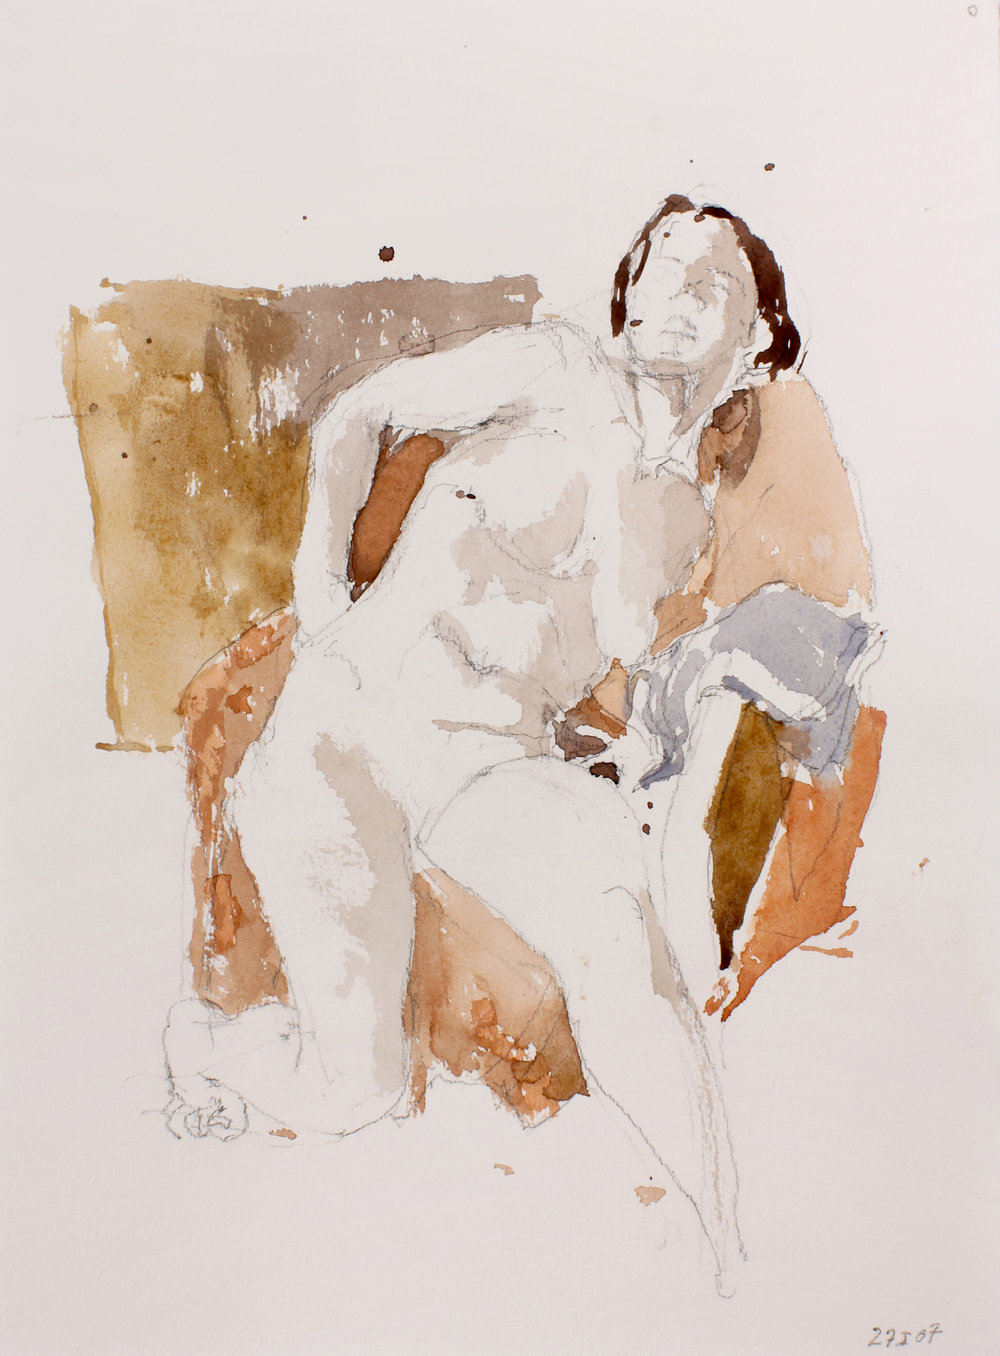 2007_Seated_Nude_with_Hand_on_Hip_watercolour_and_pencil_on_paper_15x11in_WPF228.jpg